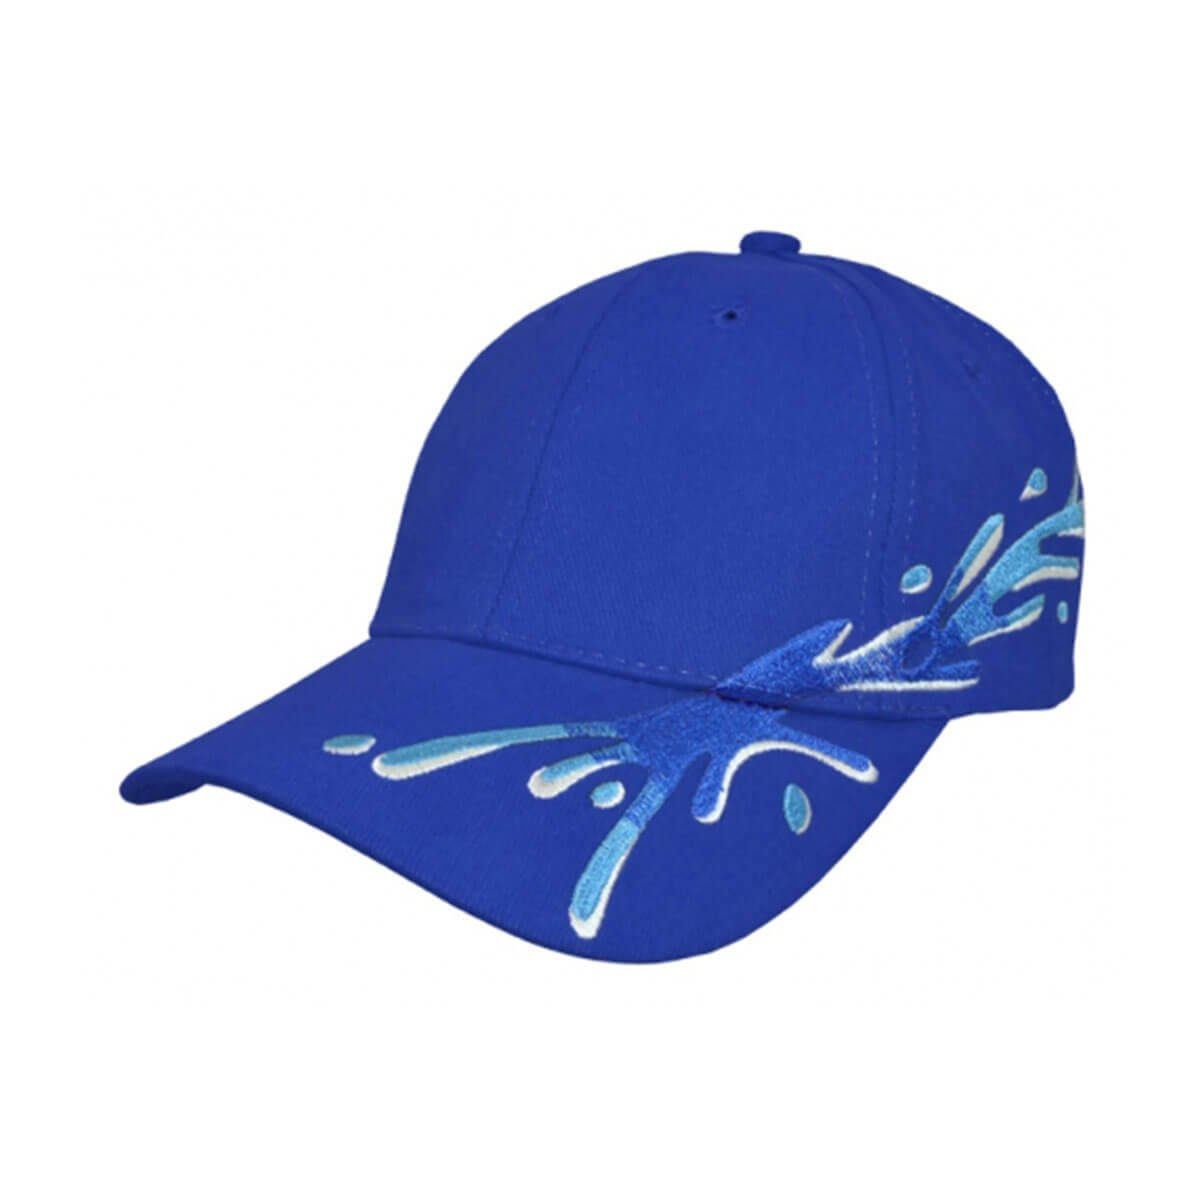 Splash Cap-Royal / Royal / Sky / White